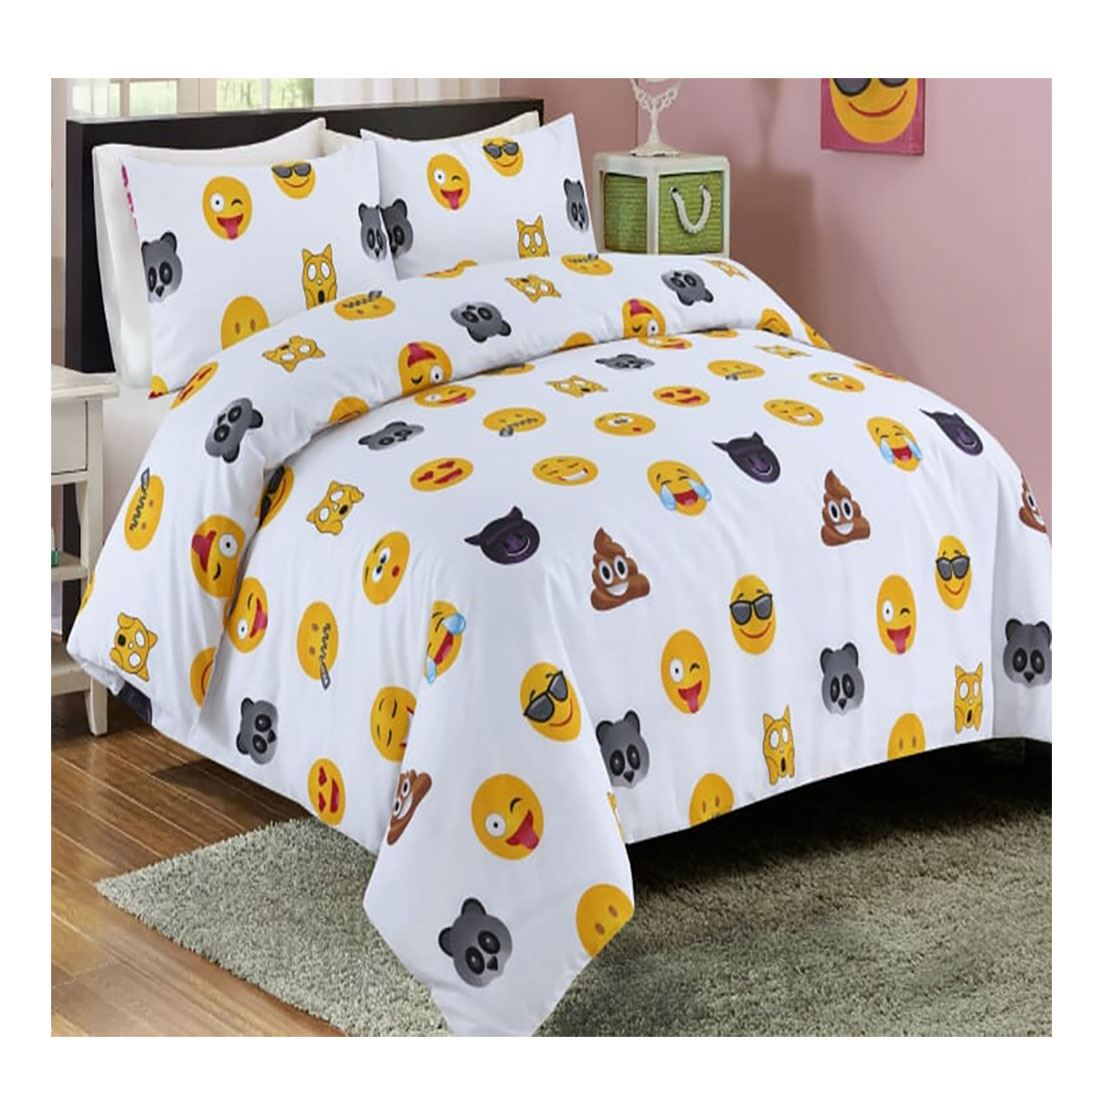 Icon Smiley Face Printed Reversible Duvet Cover Pillow Case Bedding Set